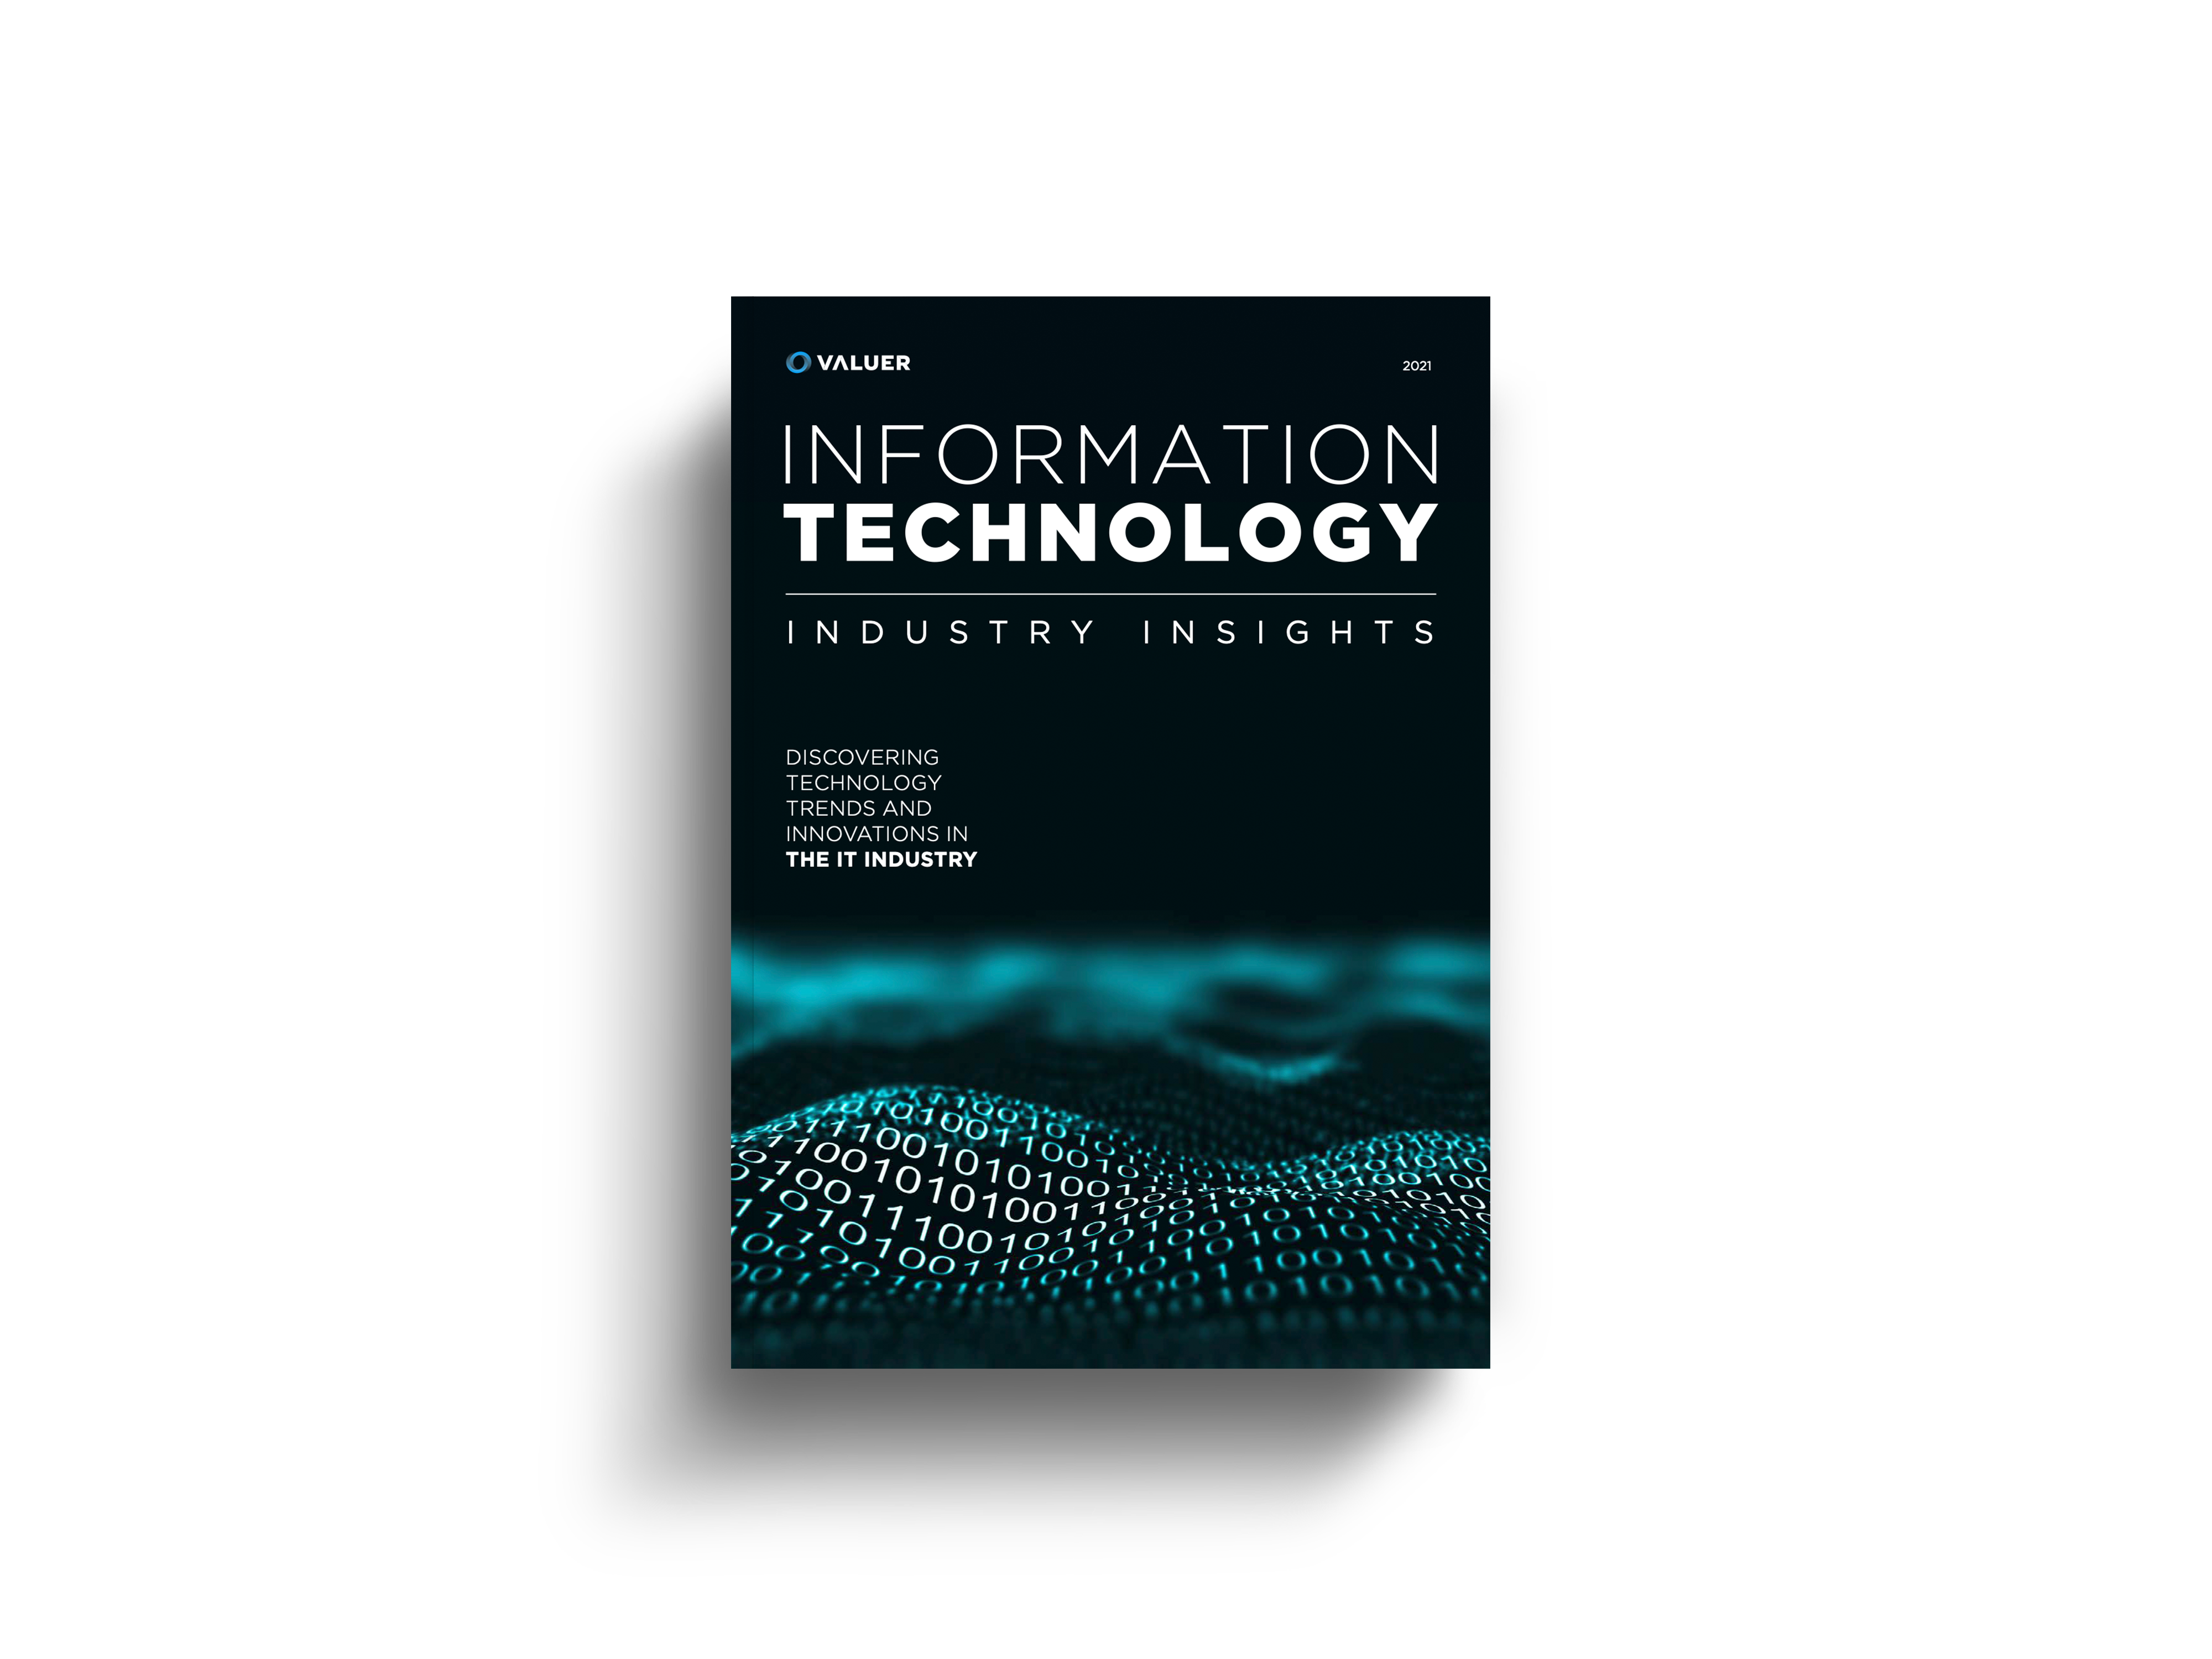 Cover for information technology industry insights case study